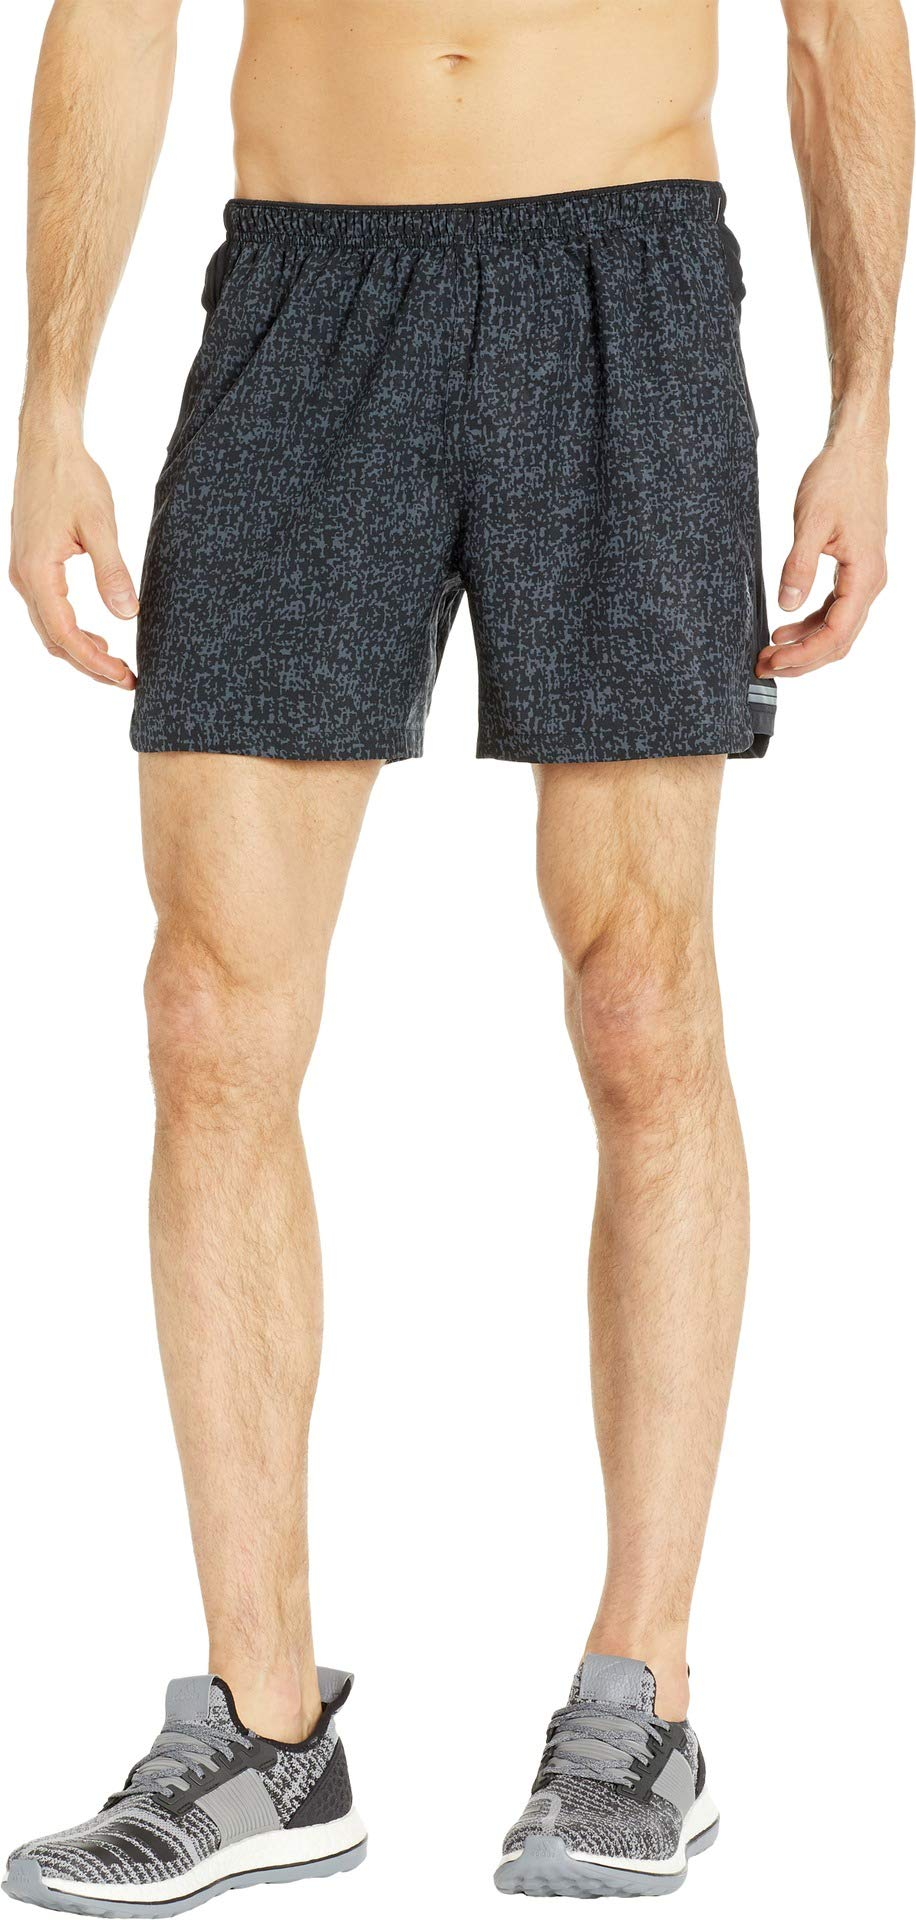 Brooks Men's Sherpa 5'' Shorts Black Static/Black Medium 5 by Brooks (Image #1)